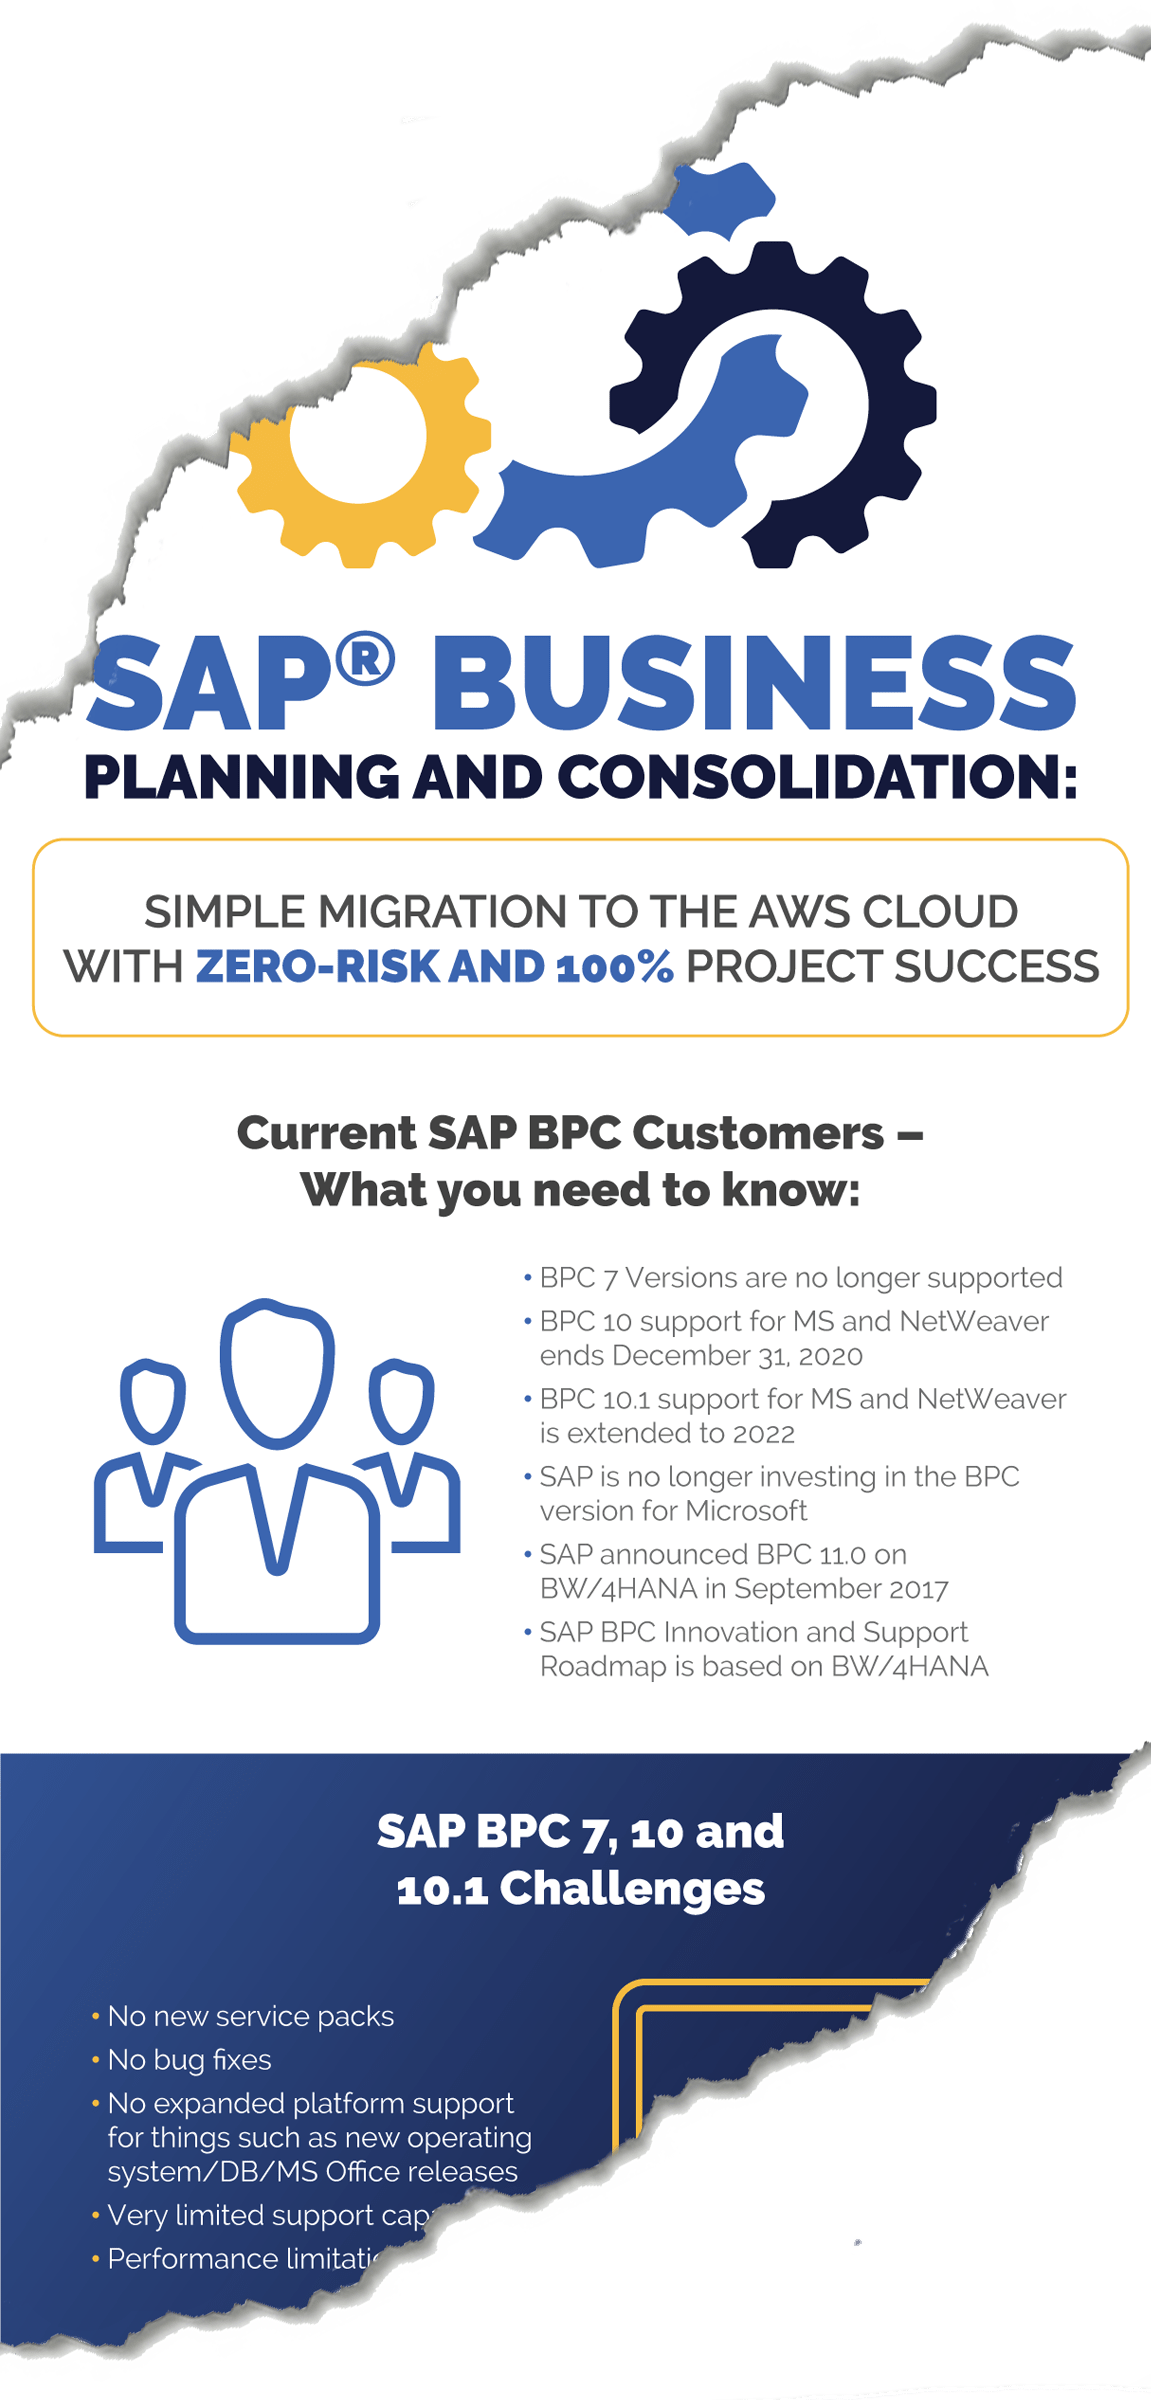 SAP BPC - Business, Planning and Consolidation - Simple Migration to the AWS Cloud